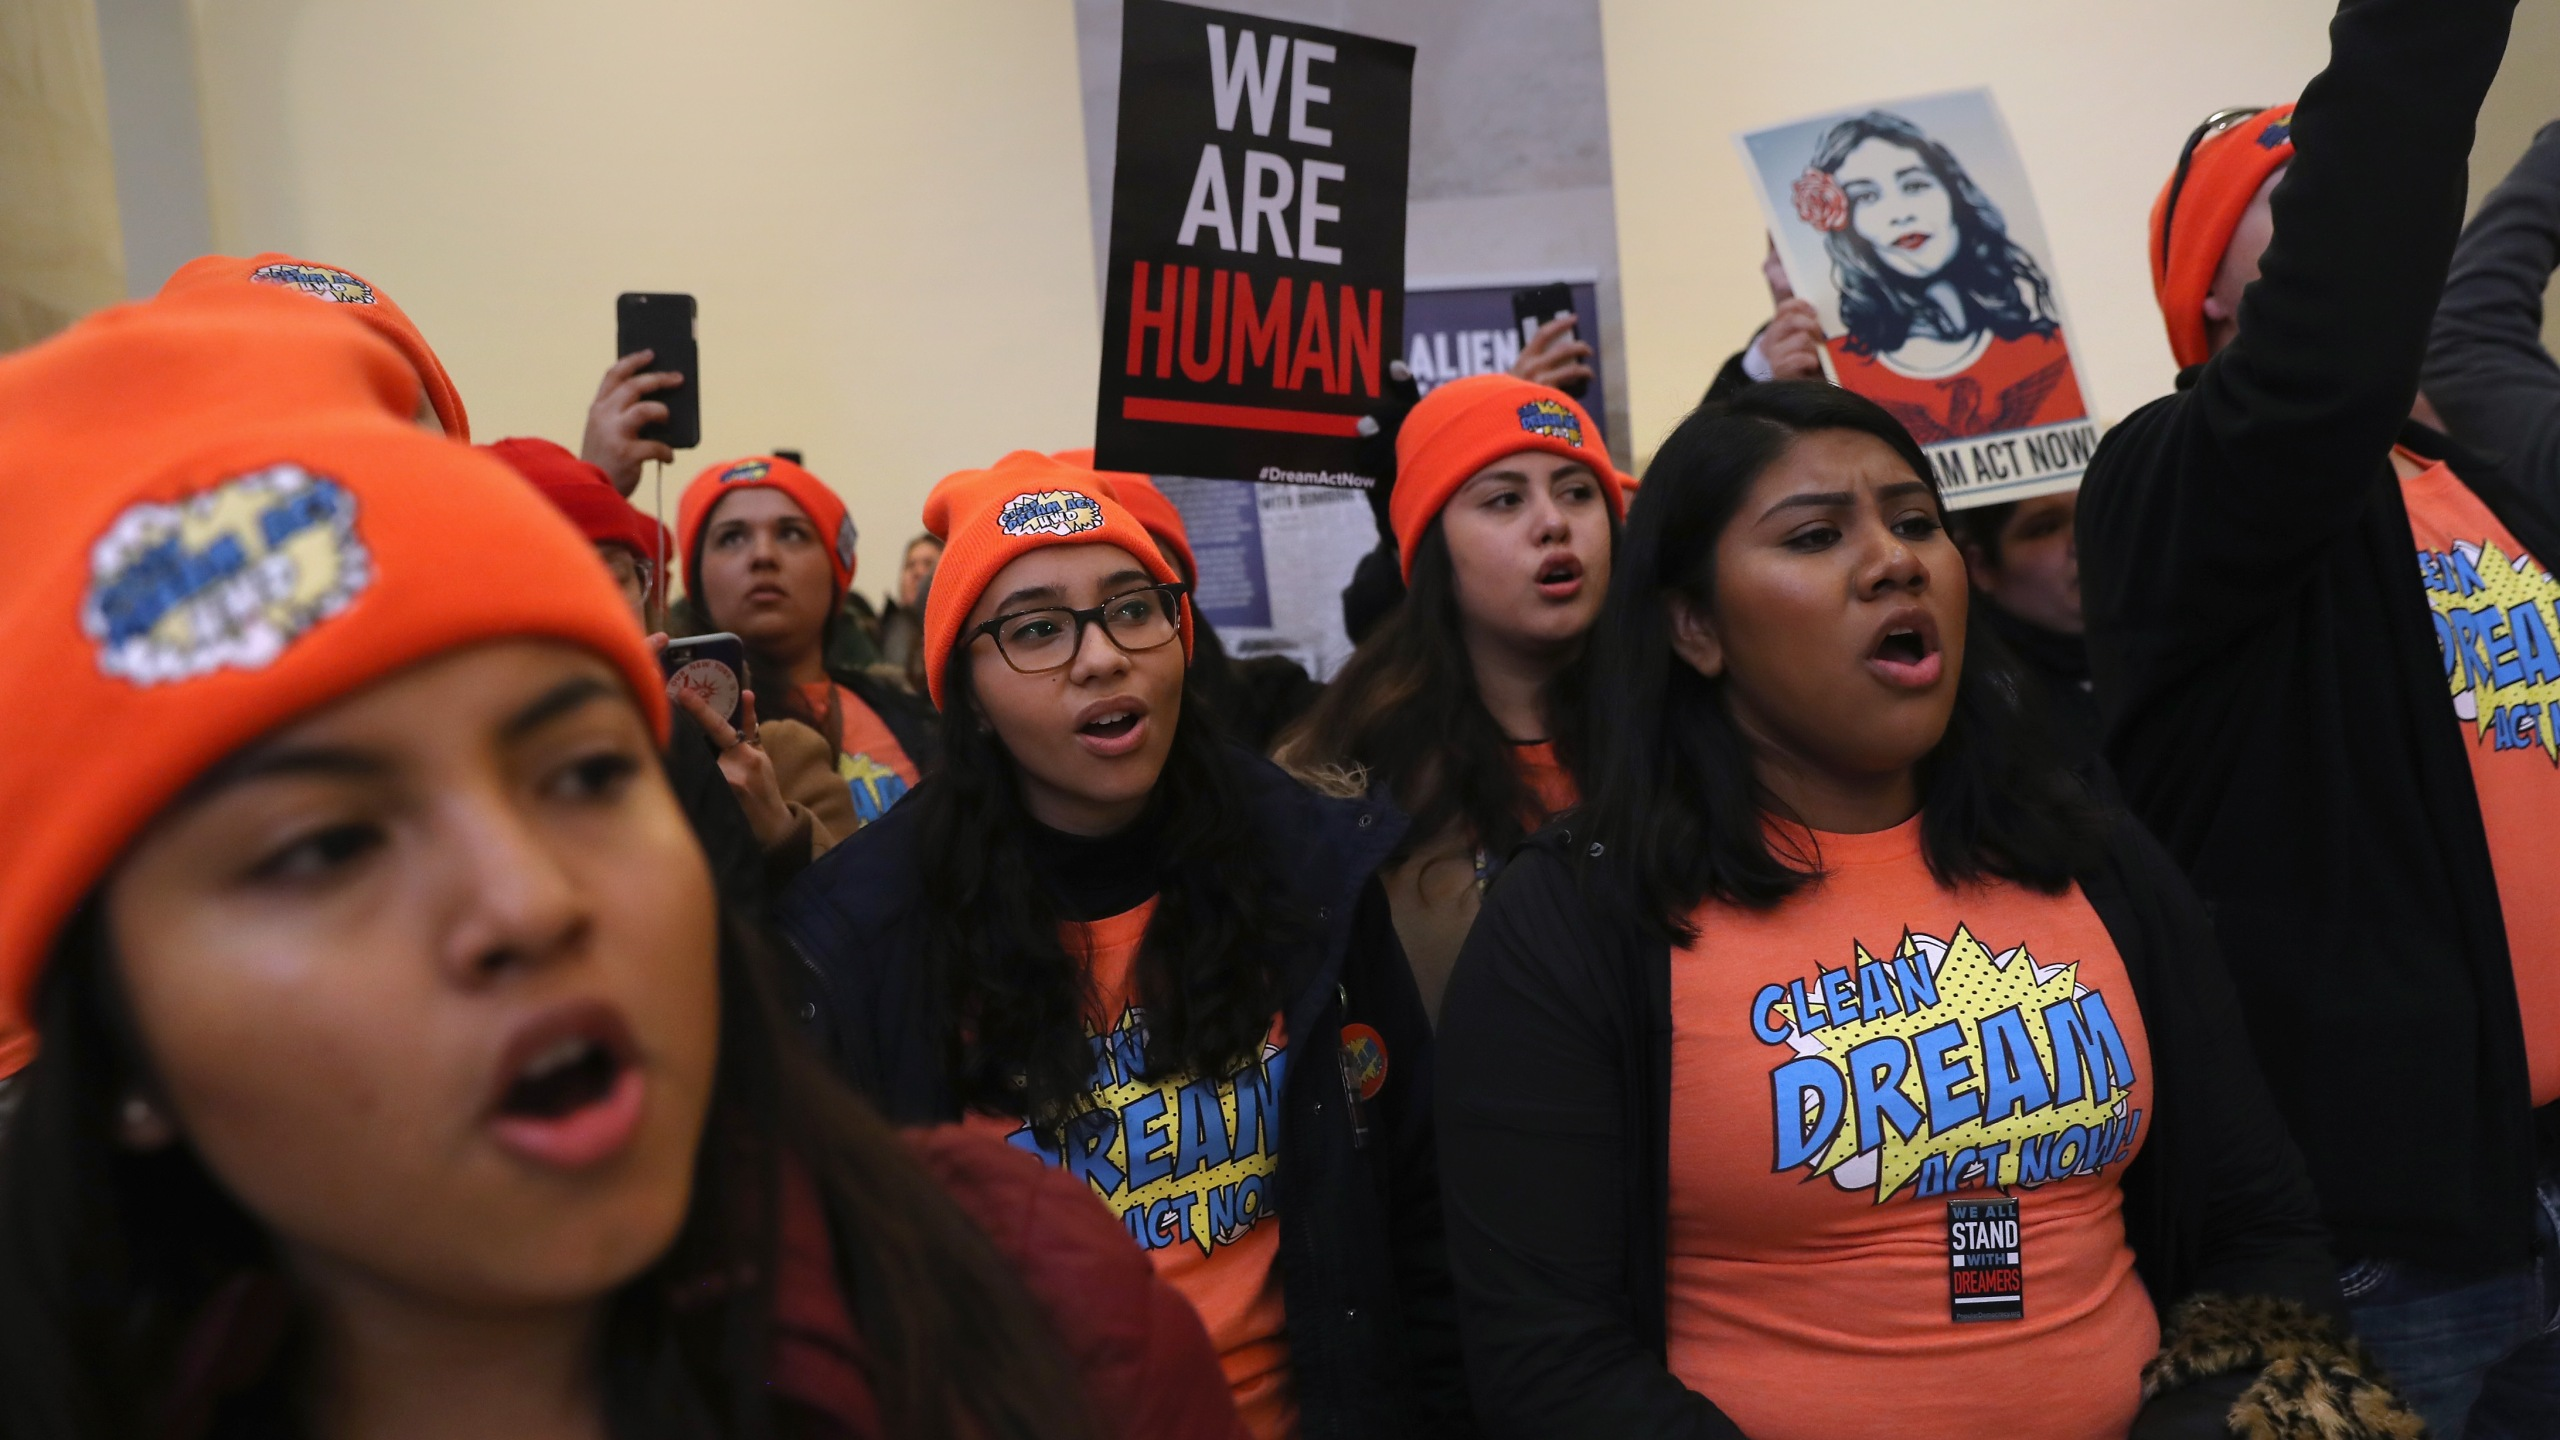 Immigration activists protest in the Russell Senate Office Building on Feb. 7, 2018 in Washington, D.C. (Credit: John Moore/Getty Images,)